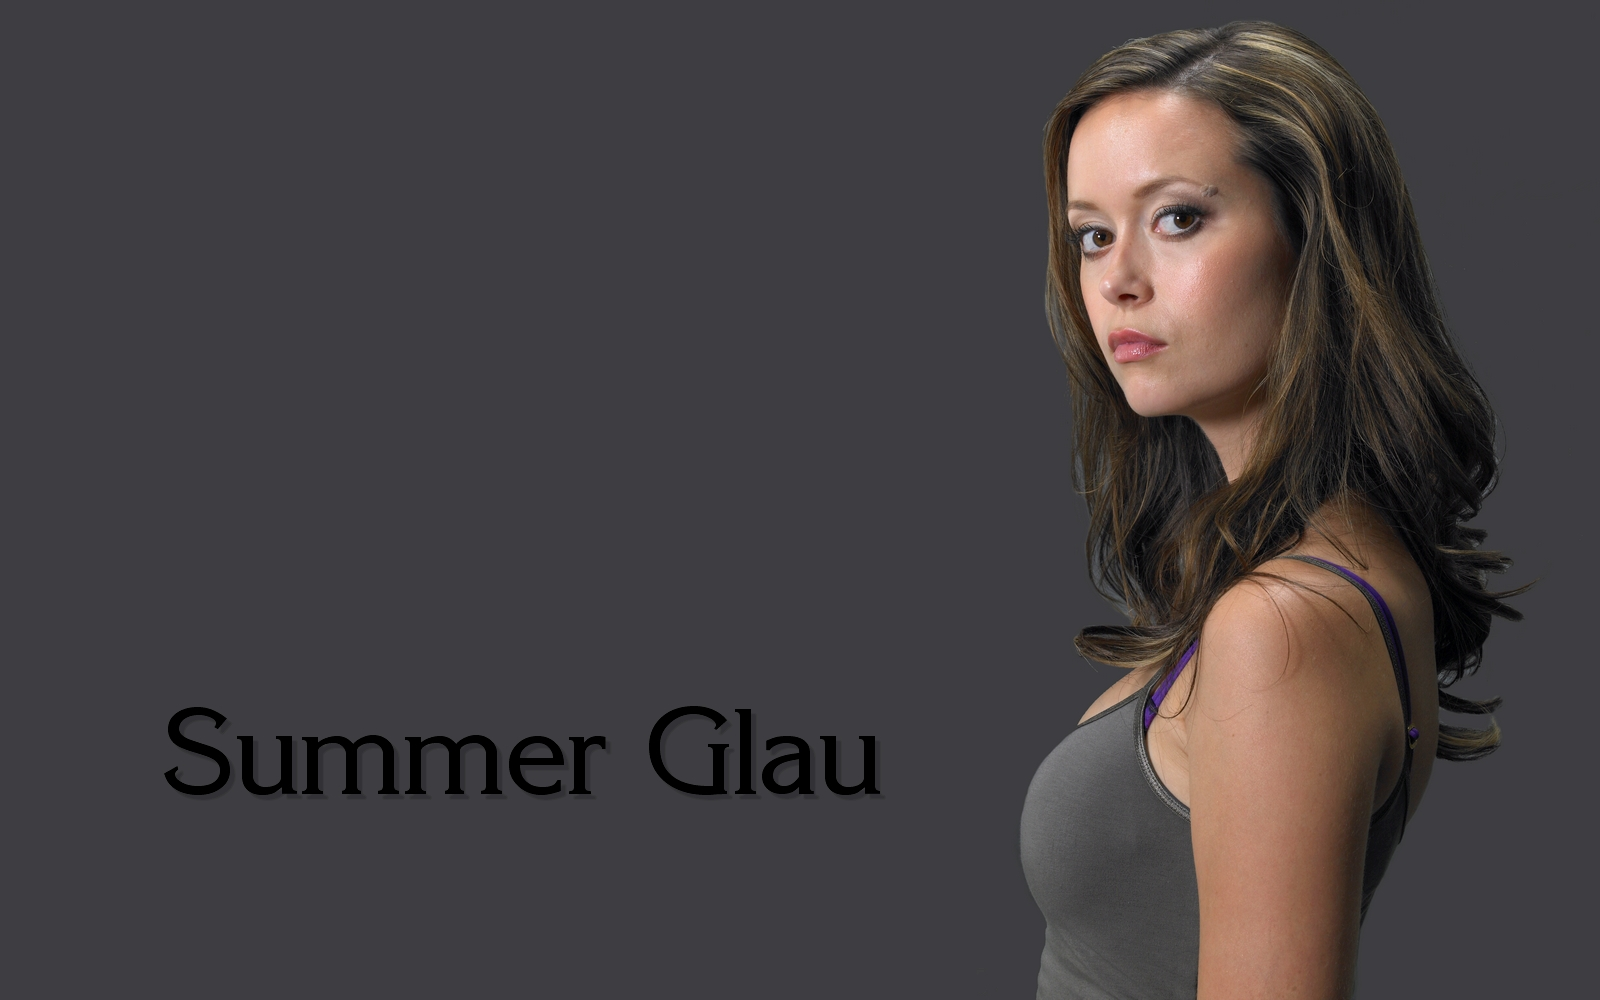 Summer glau the unit s02e14